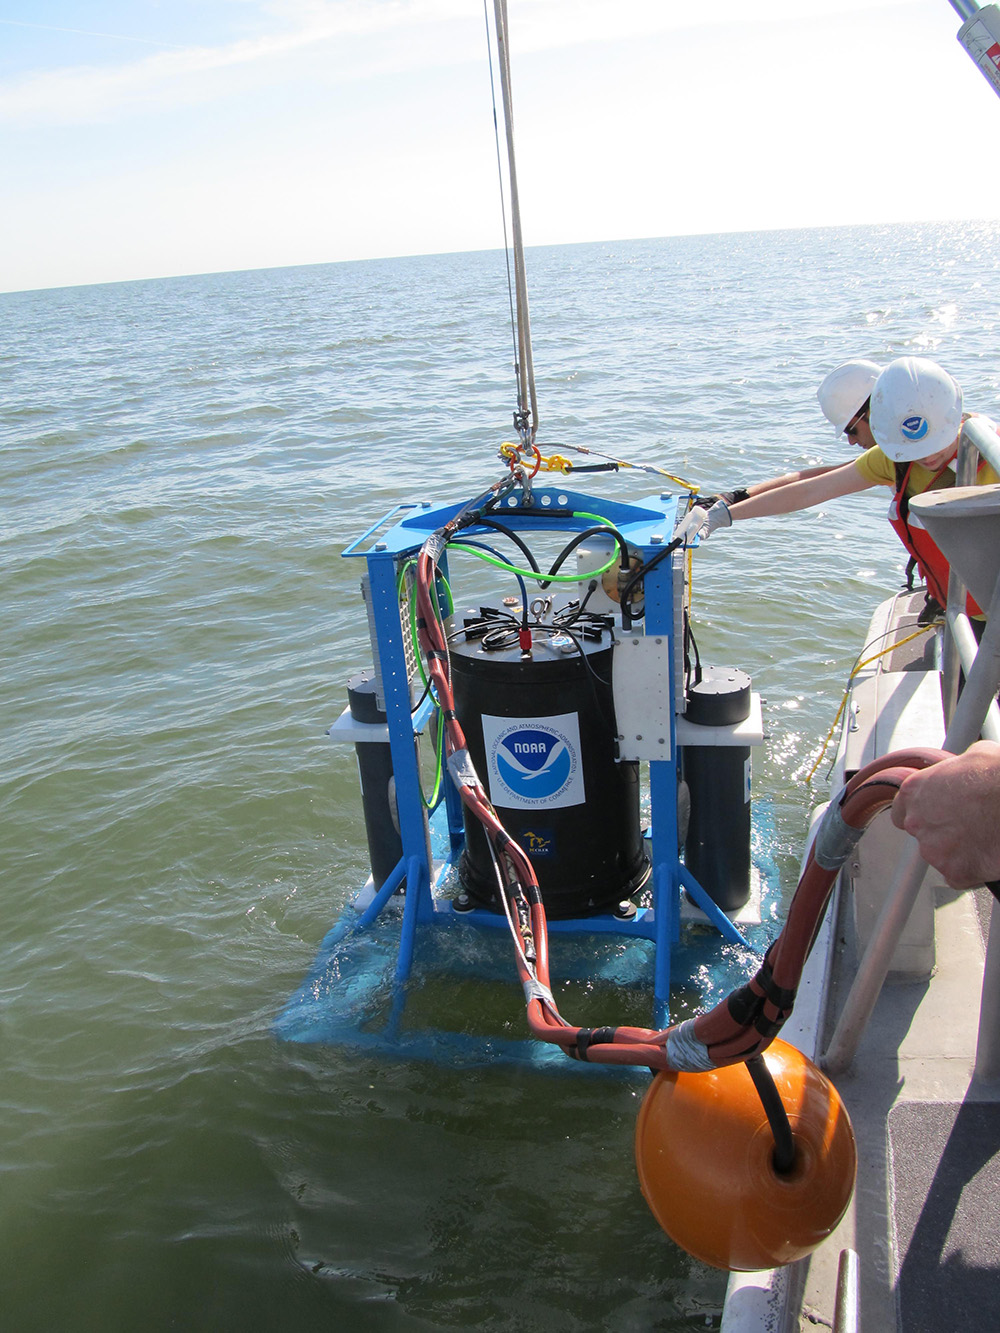 The sealed Environmental Sample Processor is lowered into a lake. Image: NOAA.